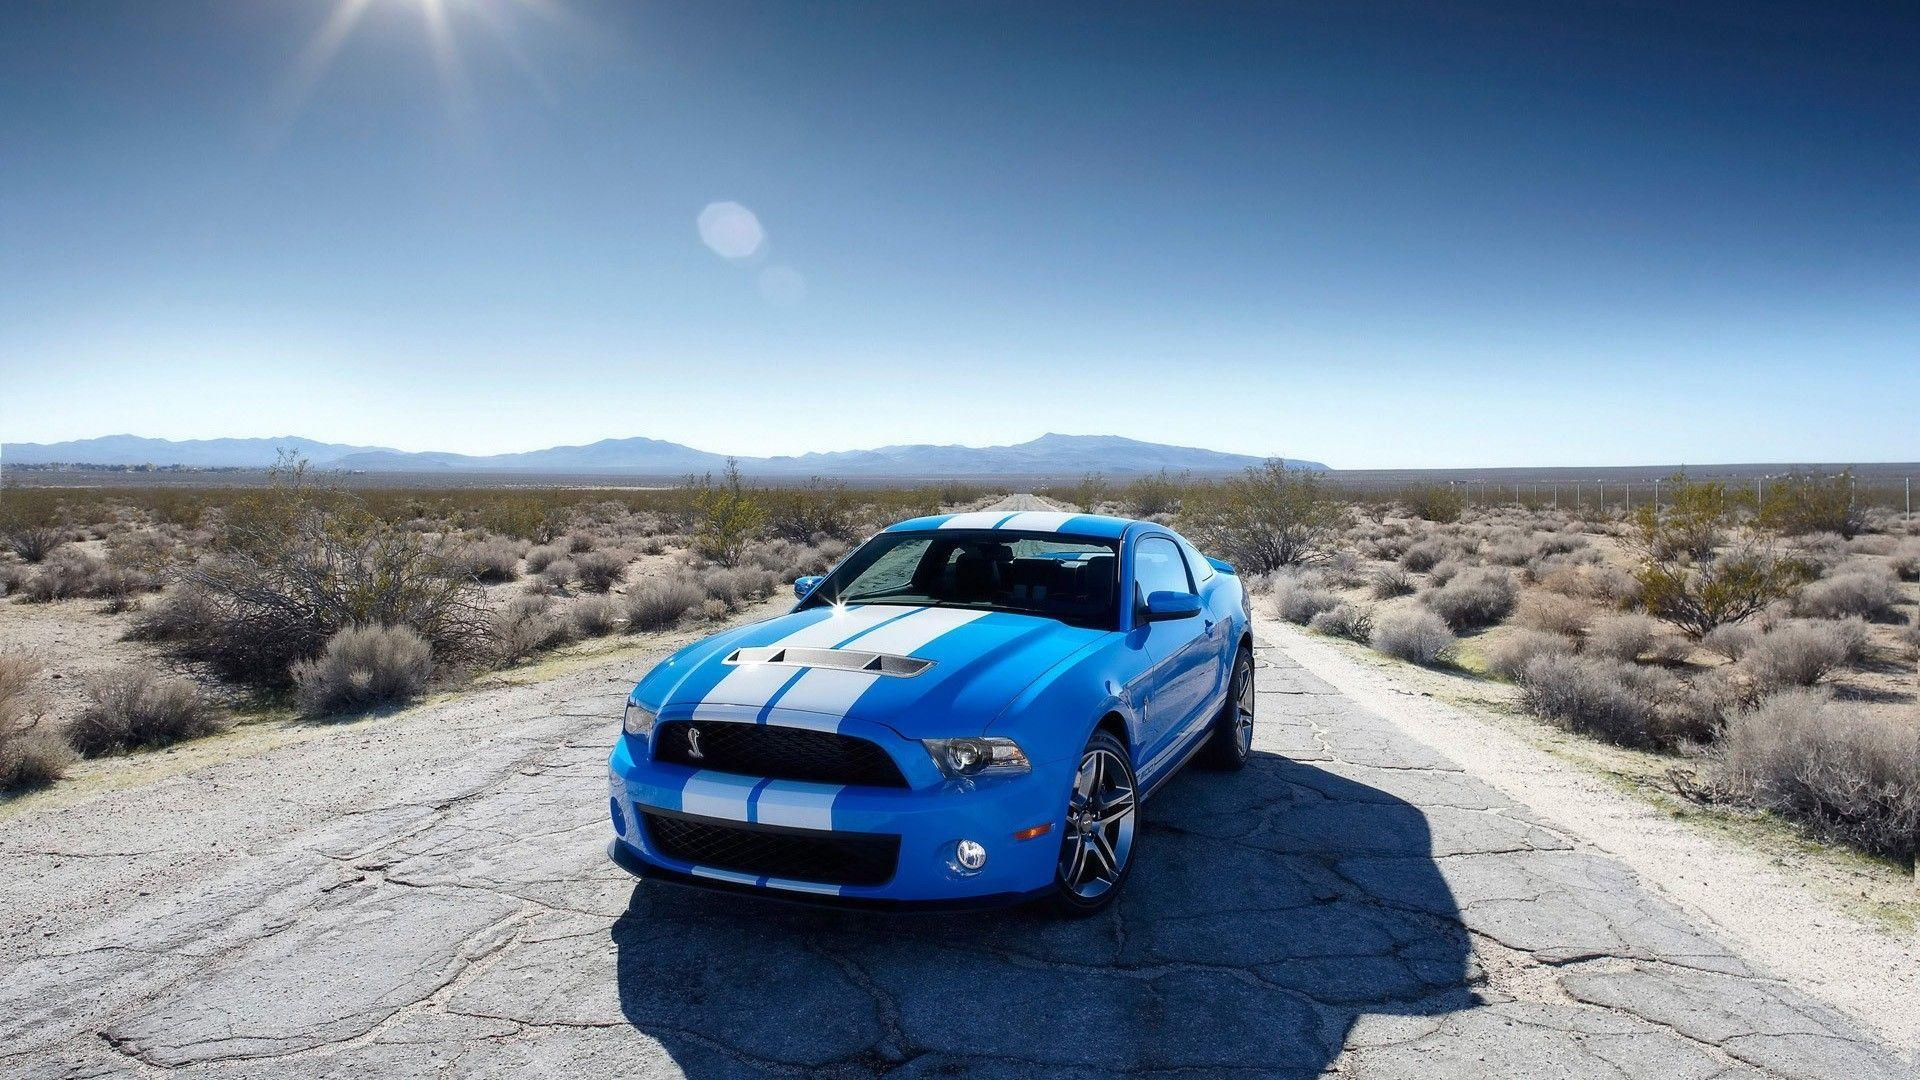 Cool Ford Mustang Sports Cars | Download High Resolution & HD ...